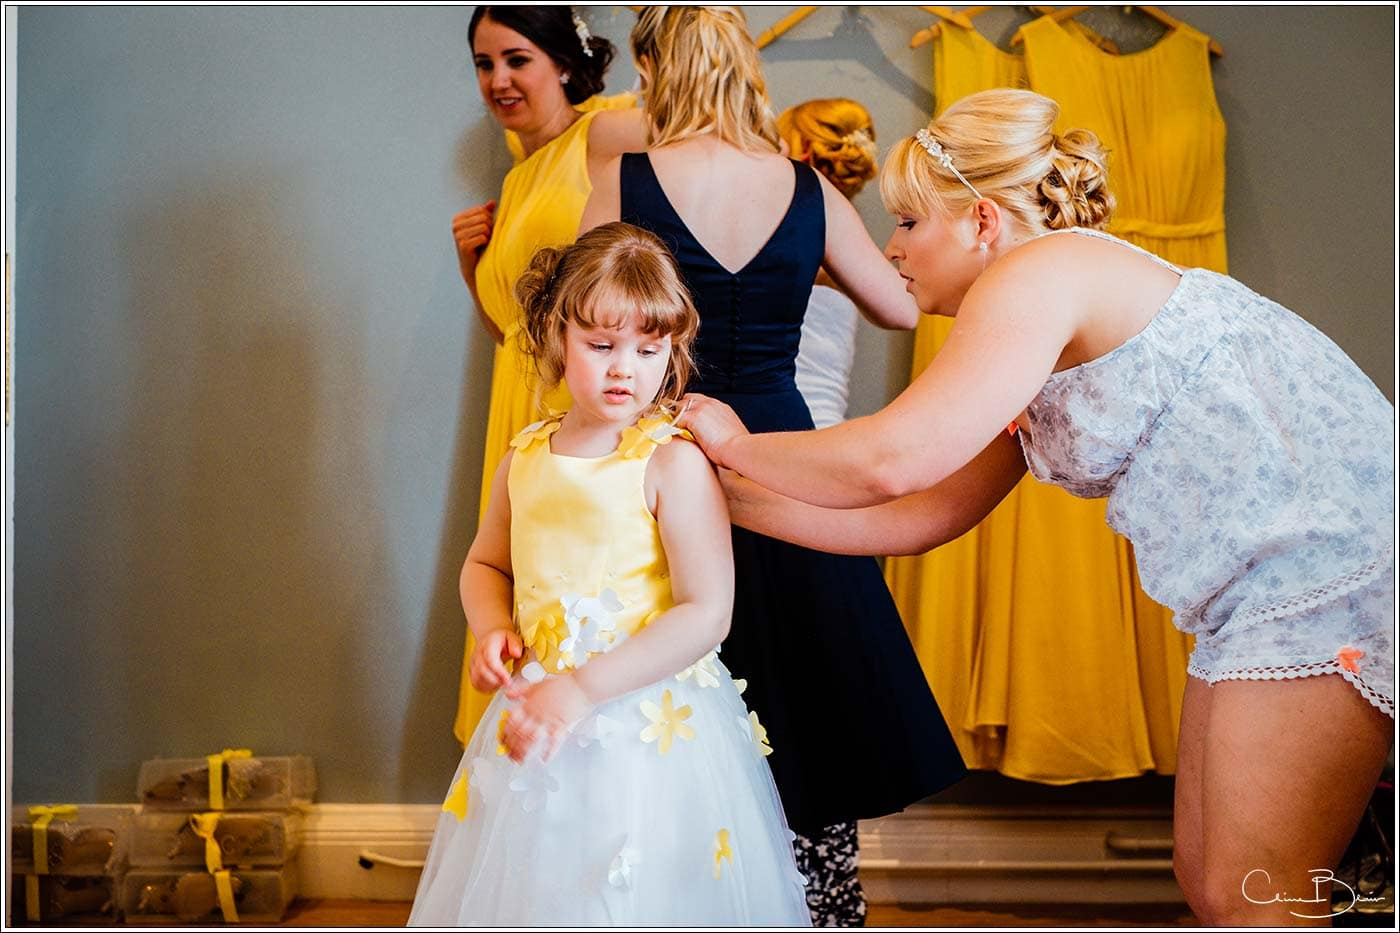 Flowergirl being prepared at Pendrell Hall as photographed by a recommended Pendrell Hall photographer